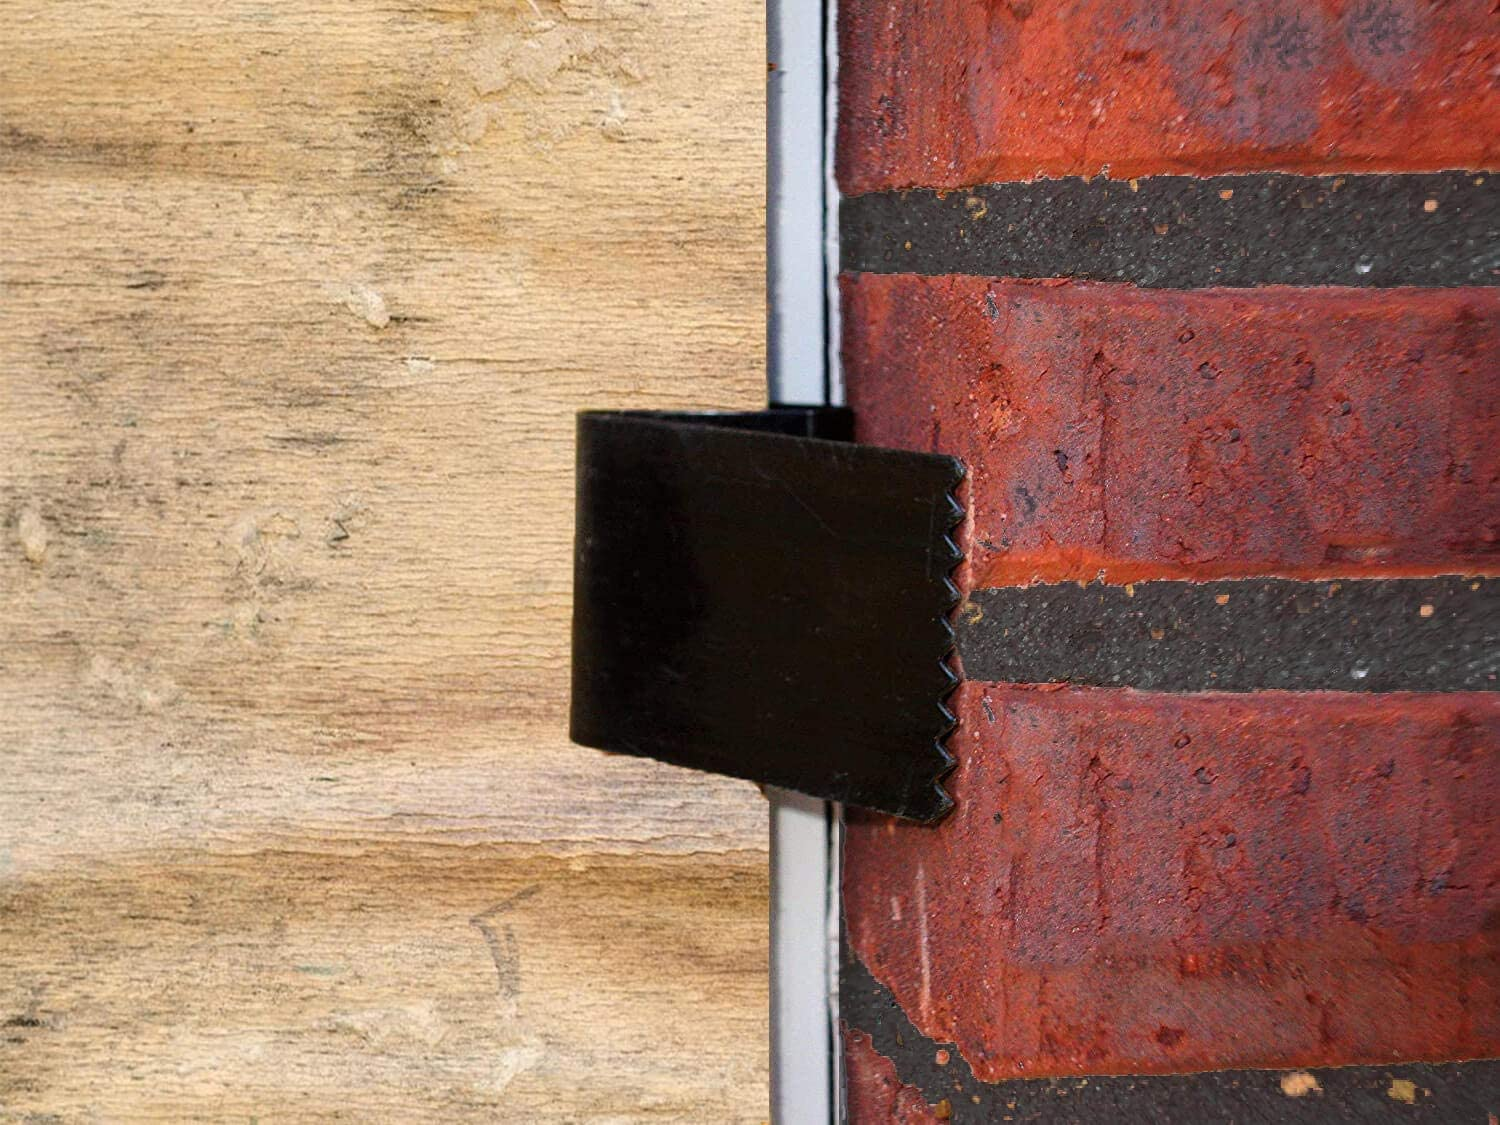 16 Pack Hurricane Window Clips Used to Secure Plywood Hurricane Shutters Black Steel Hurricane Board-Up Clips Fits 1//2 inch Thick Plywood//Brick//Wood /& Stucco